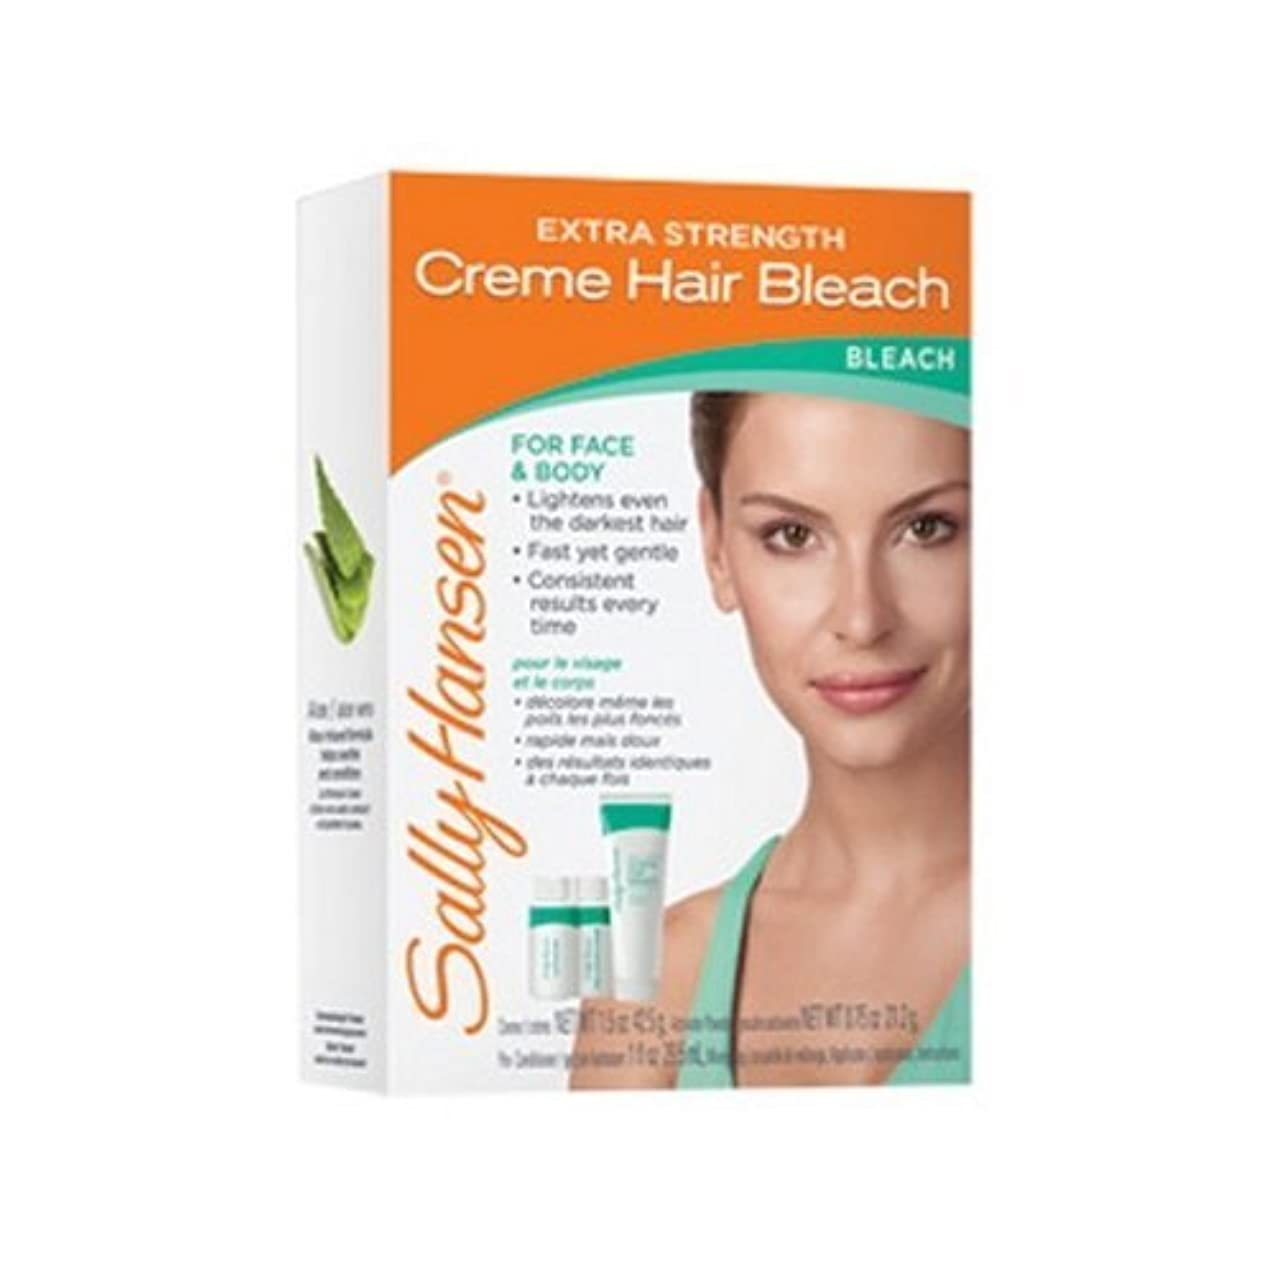 不純消費スリッパ(3 Pack) SALLY HANSEN Extra Strength Creme Hair Bleach for Face & Body - SH2010 (並行輸入品)